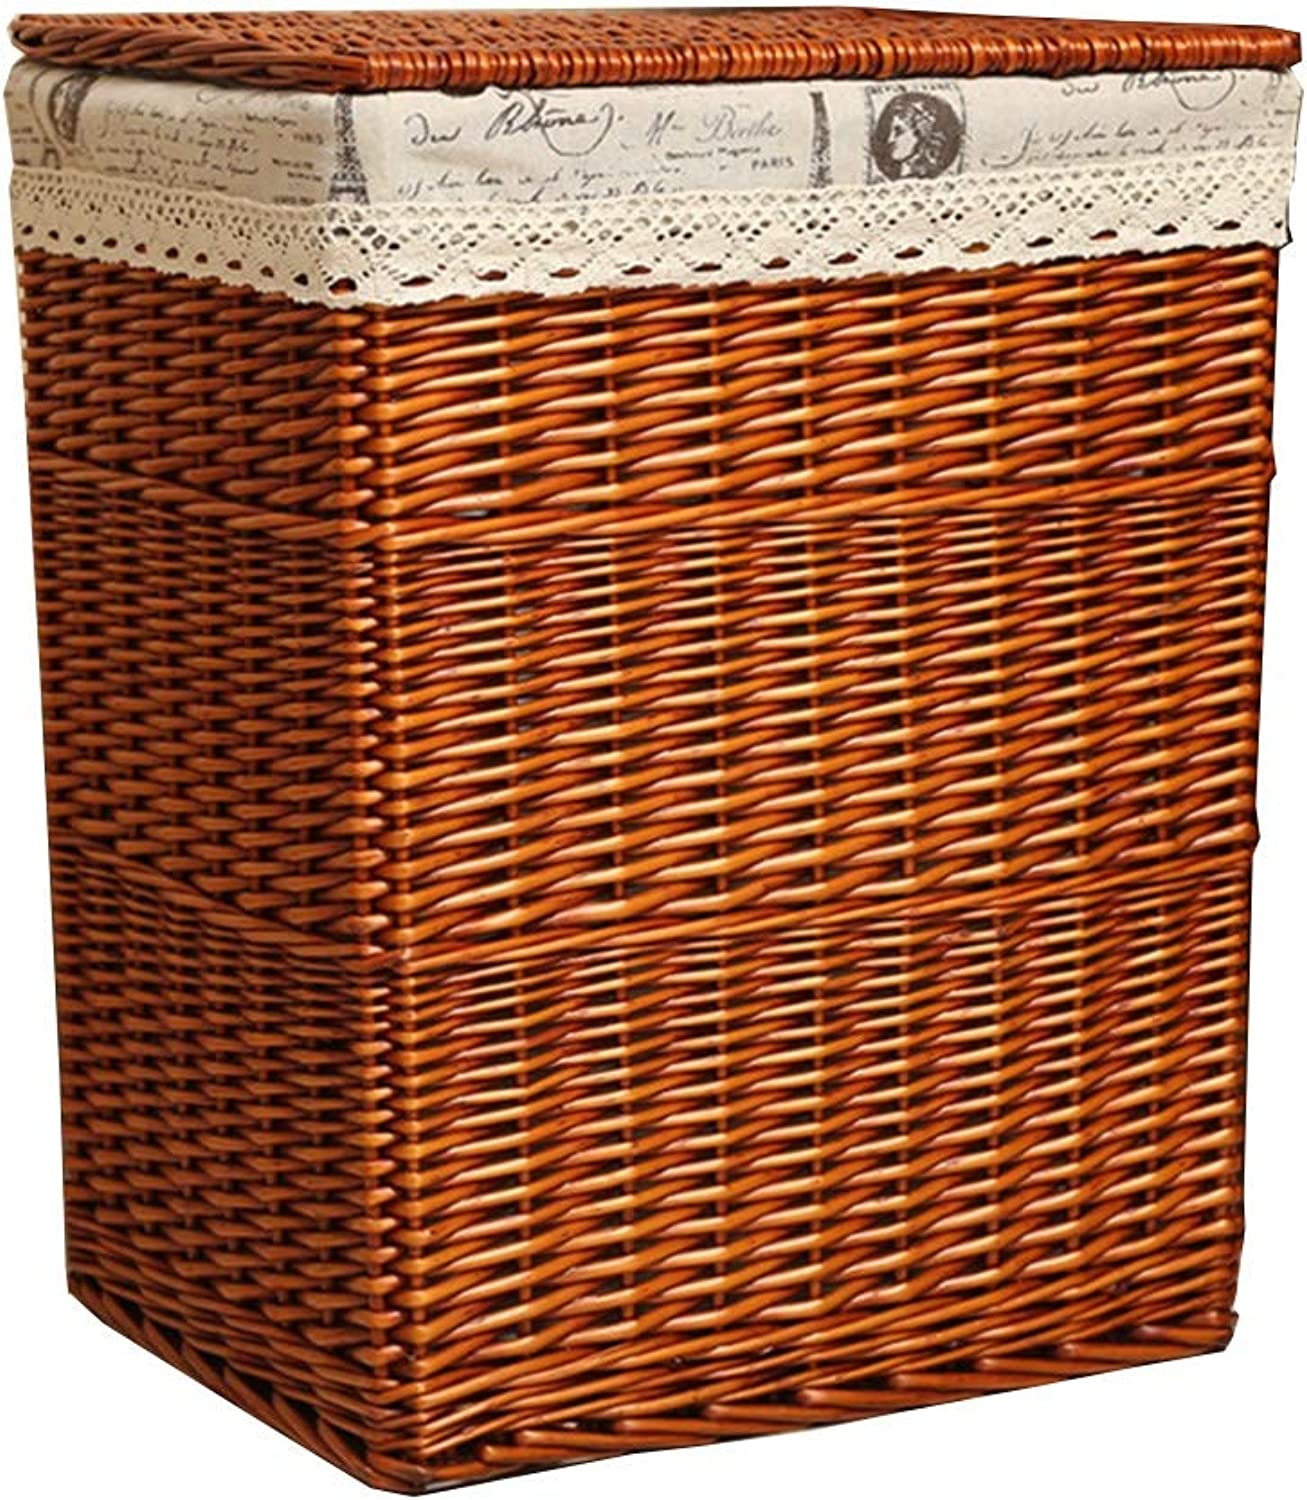 ZHANGQIANG Storage Basket Laundry Basket Laundry Storage Basket Collapsible Hamper with Lid Handle and Detachable Lining Rectangular Natural Bamboo, Brown (color   Brown Iron Cloth, Size   Large)